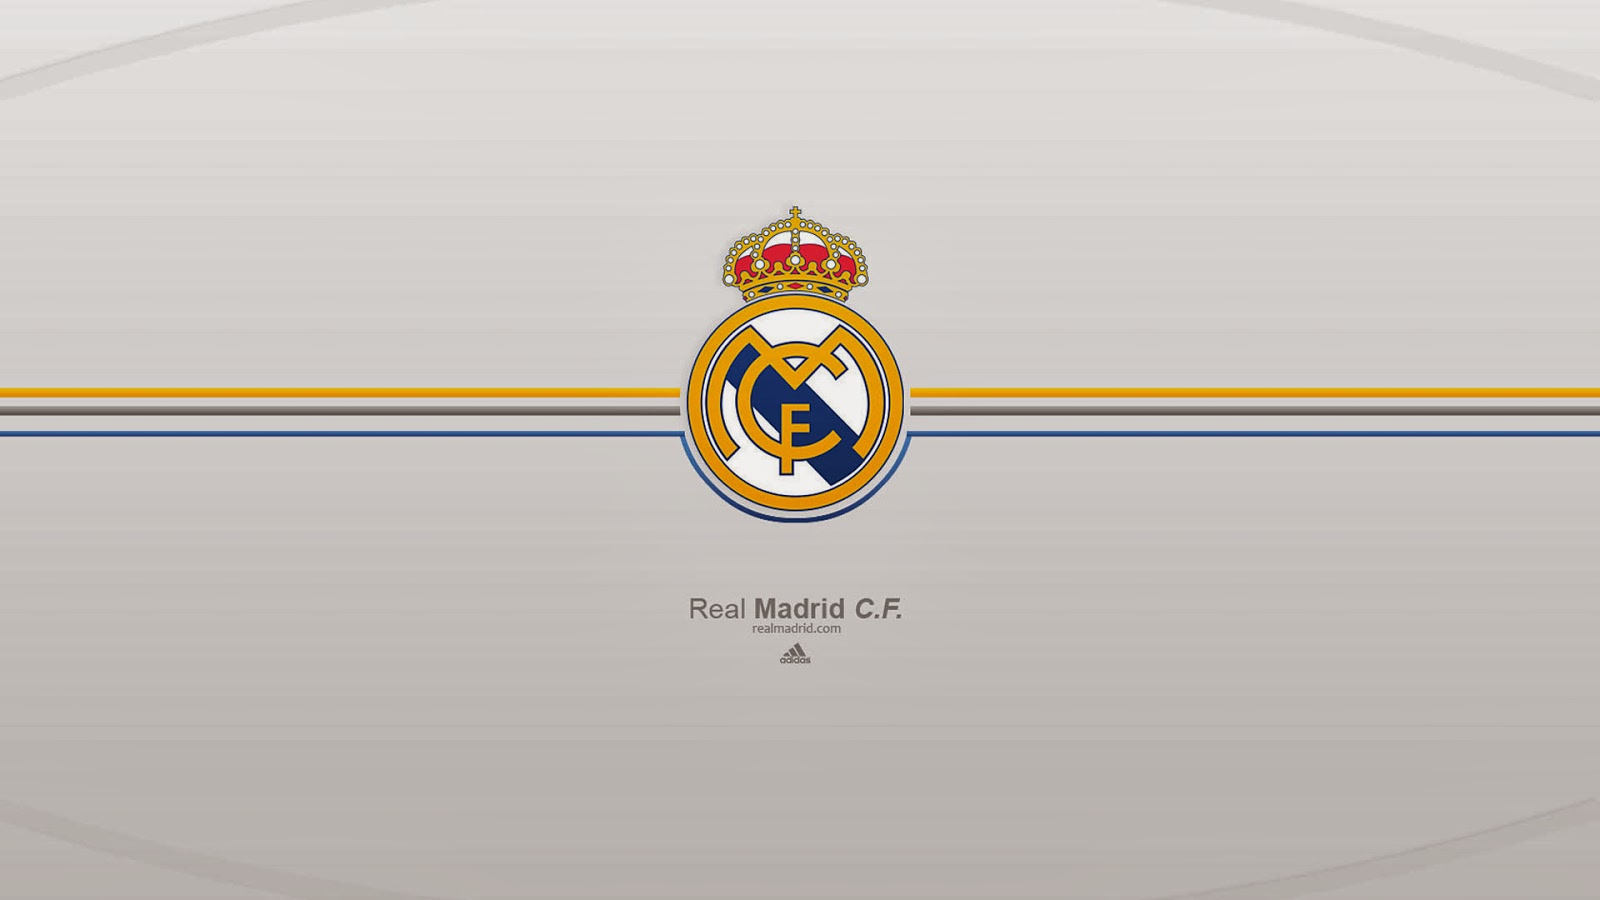 95a5662d5508f FC Real Madrid - Fondos de Pantalla HD - Wallpapers HD